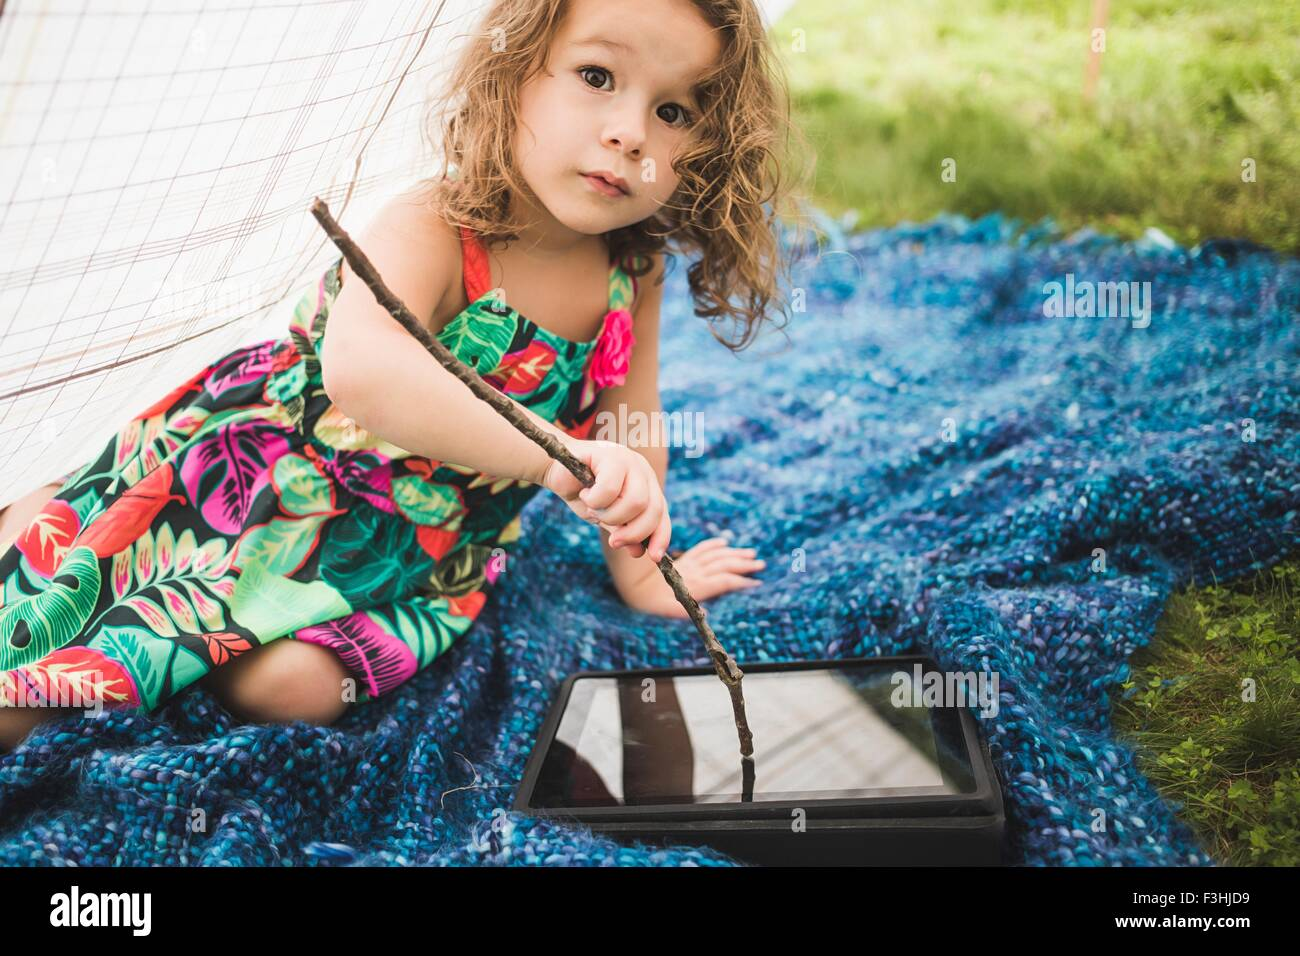 Girl in homemade garden tent using twig on digital tablet screen - Stock Image